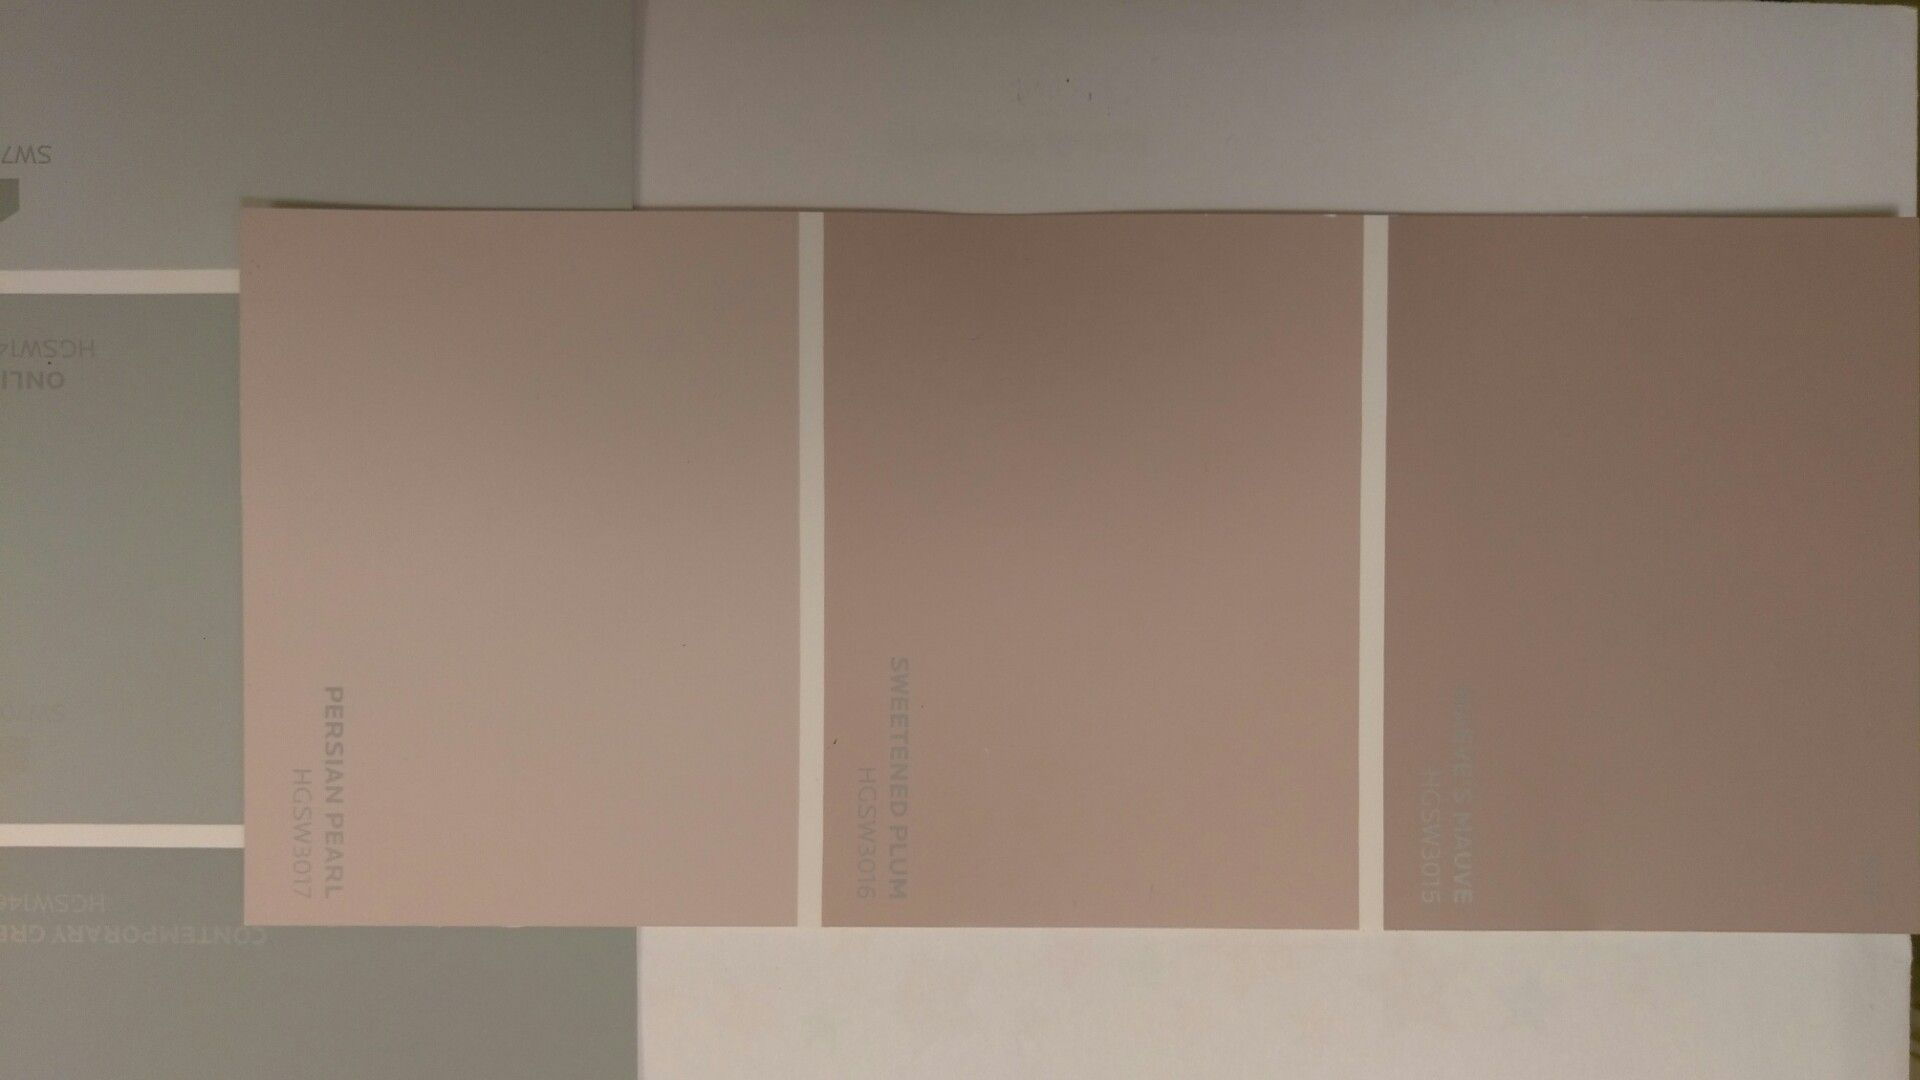 Paint Chip Sherwin Williams 146b Sw7071 Gray Screen Hgsw1467 Sw7072 Online Hgsw1466 Contemporary Grey Hgsw1465 Sherwin Willi Plum Paint Flipping Houses Sherwin